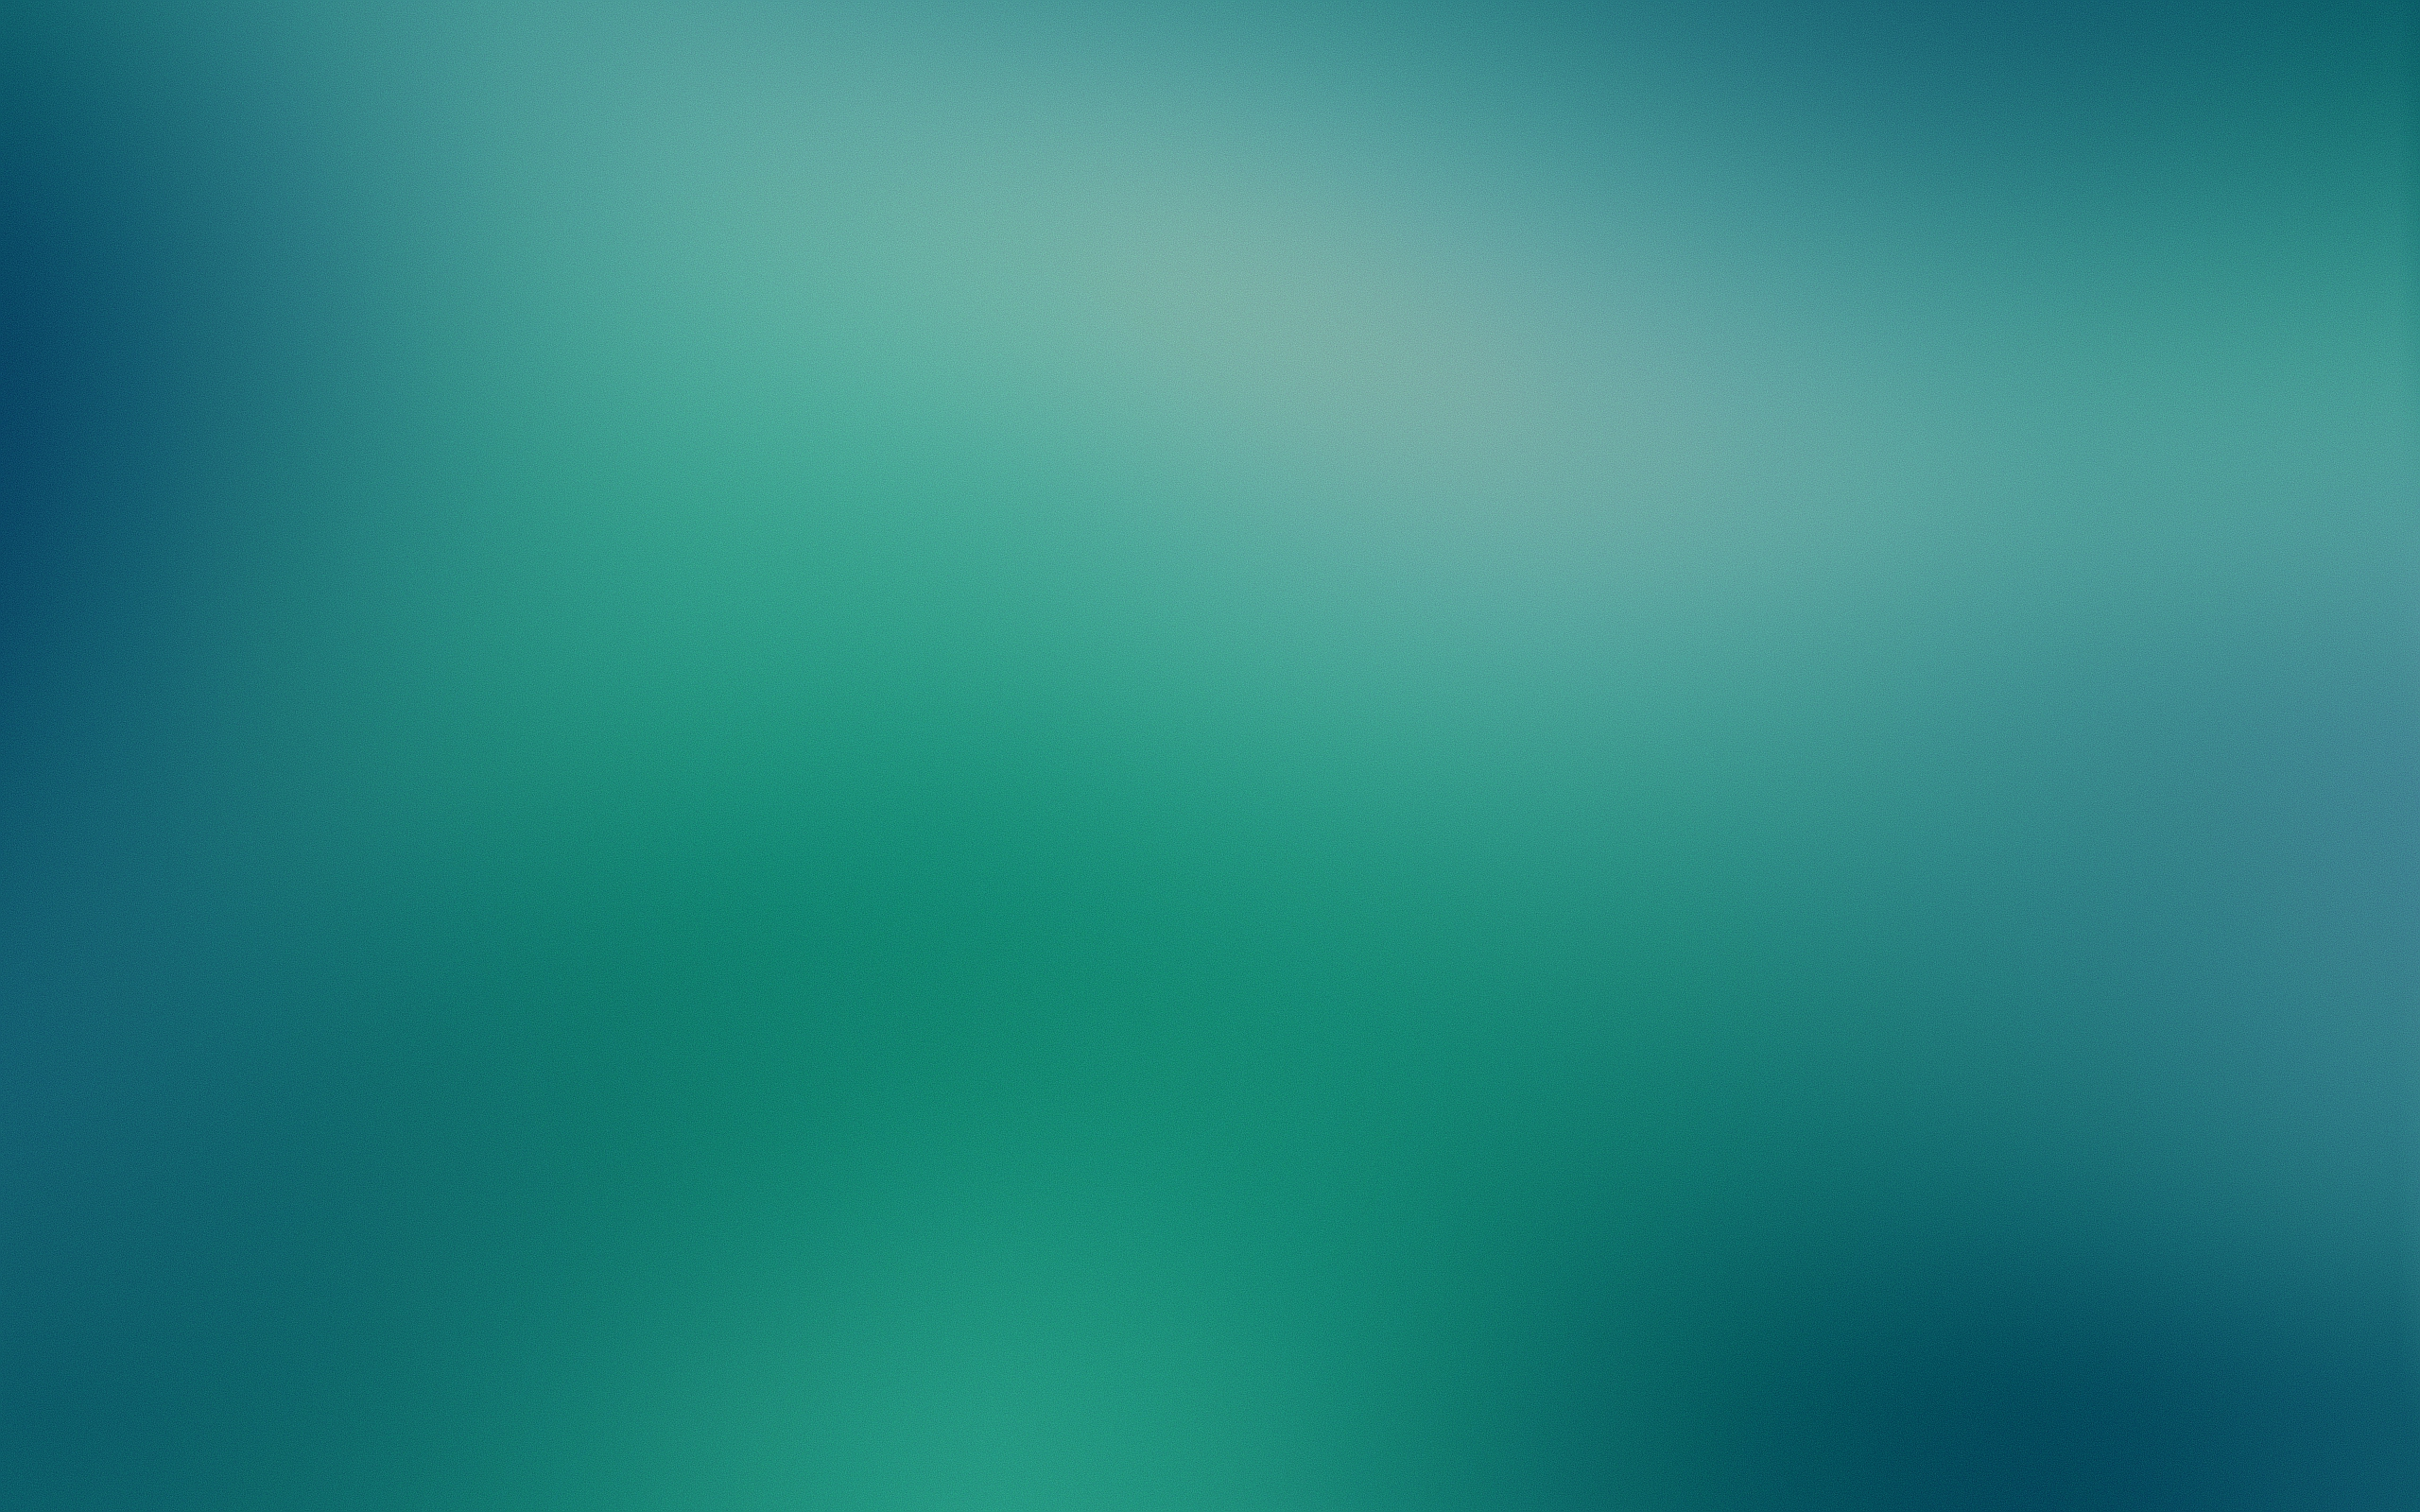 Turquoise full hd wallpaper and background image 2560x1600 id380540 abstract turquoise wallpaper voltagebd Image collections